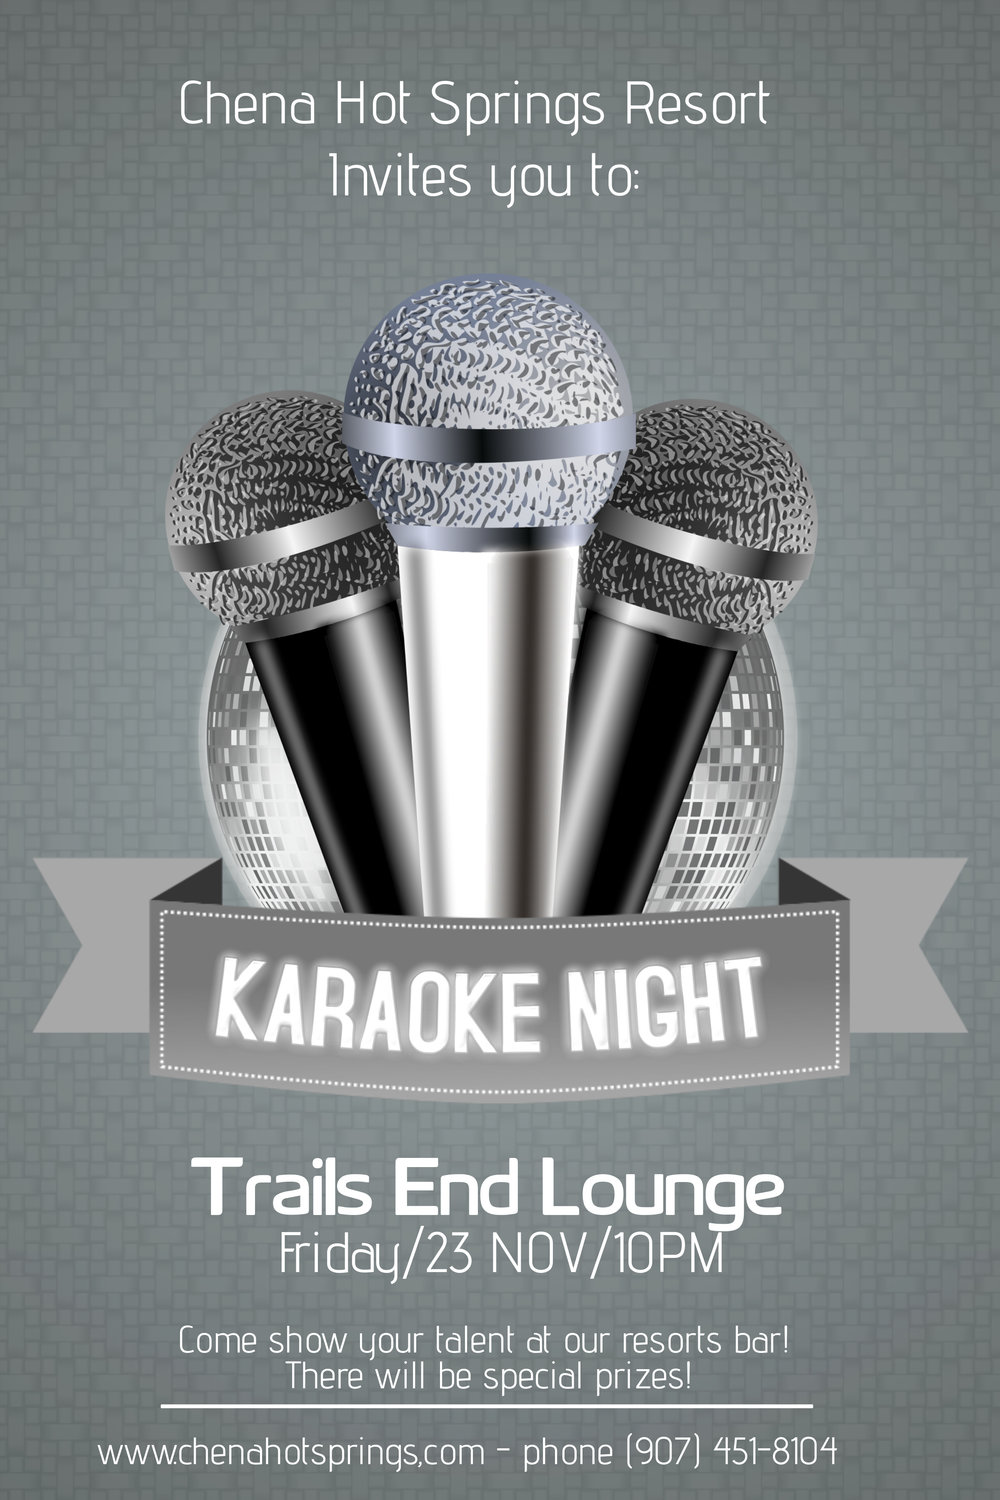 Copy of karaoke night poster template.jpg